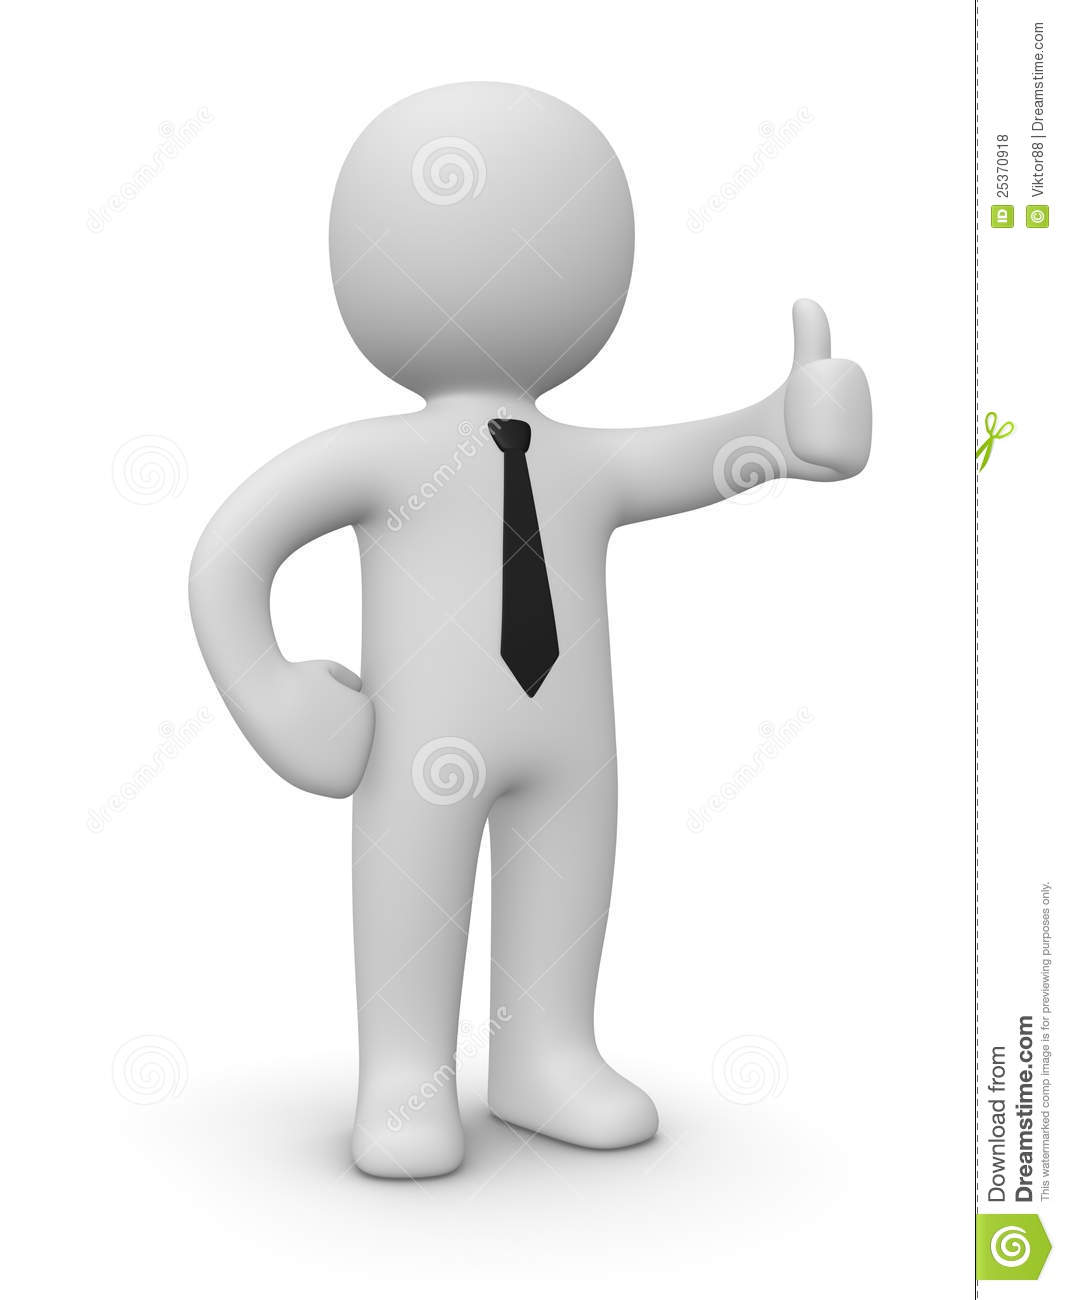 Man thumbs up clipart download Man Thumbs Up Clipart - Clipart Kid download